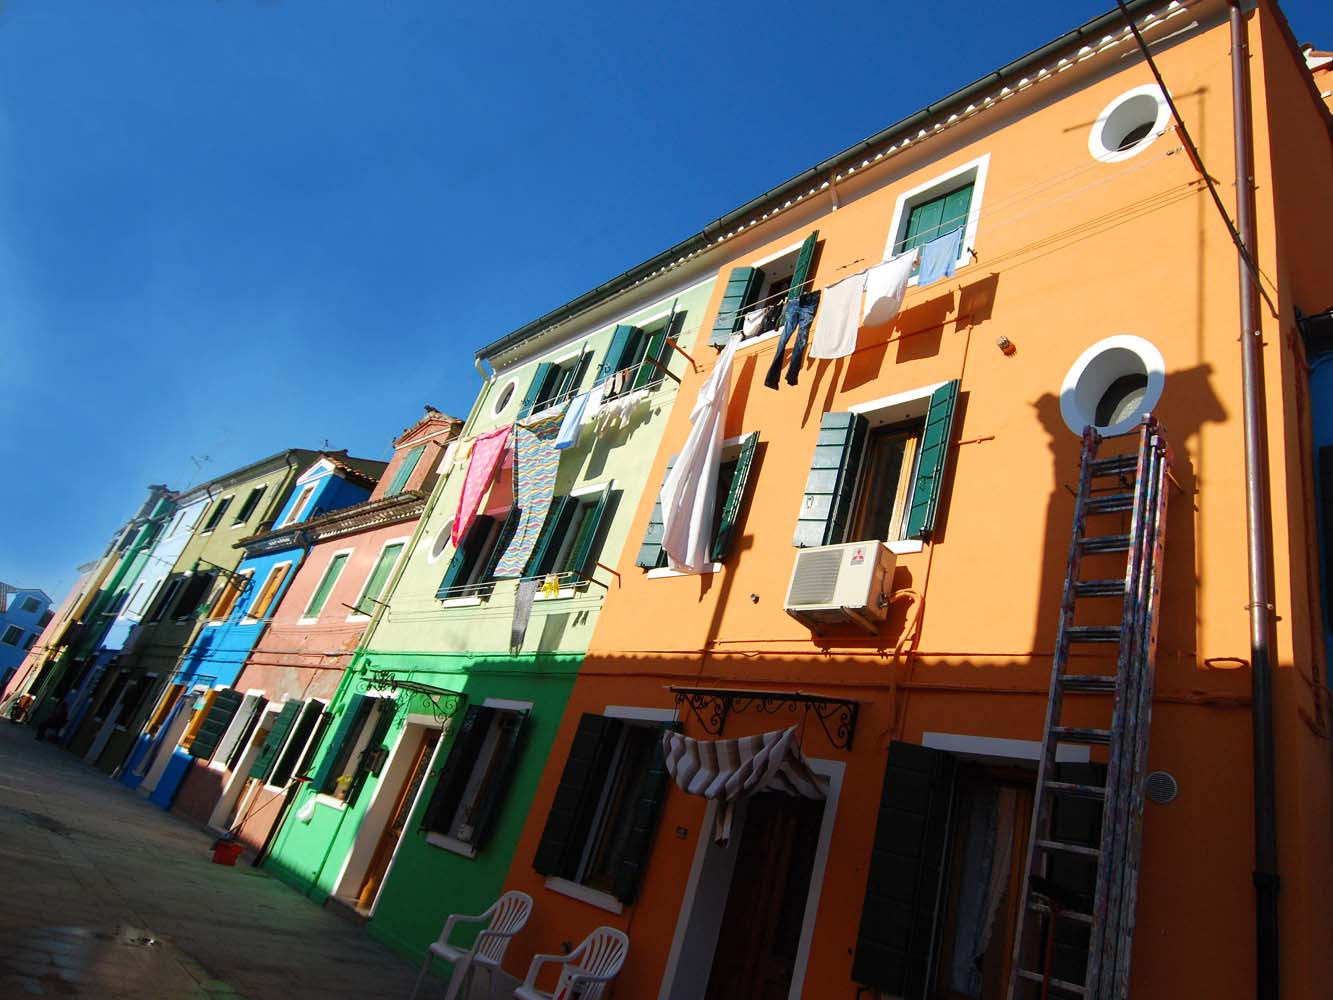 FIVS Top to Toe of Italy burano 1